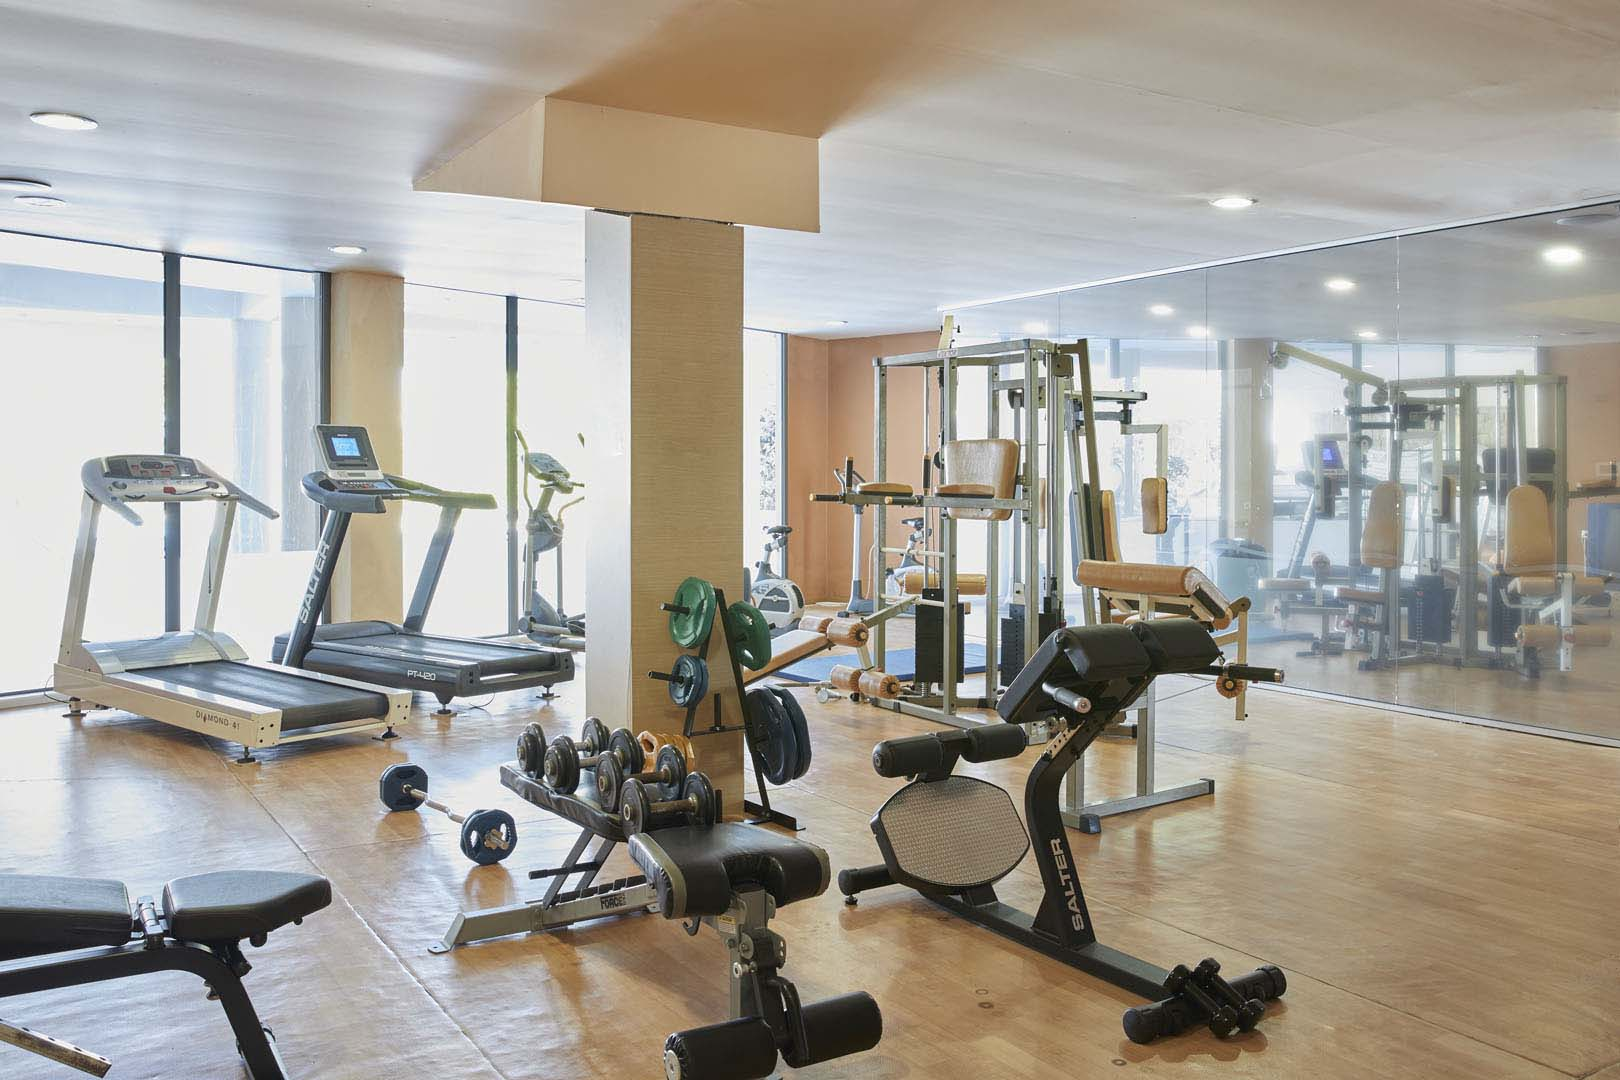 Facilities_Gym-1